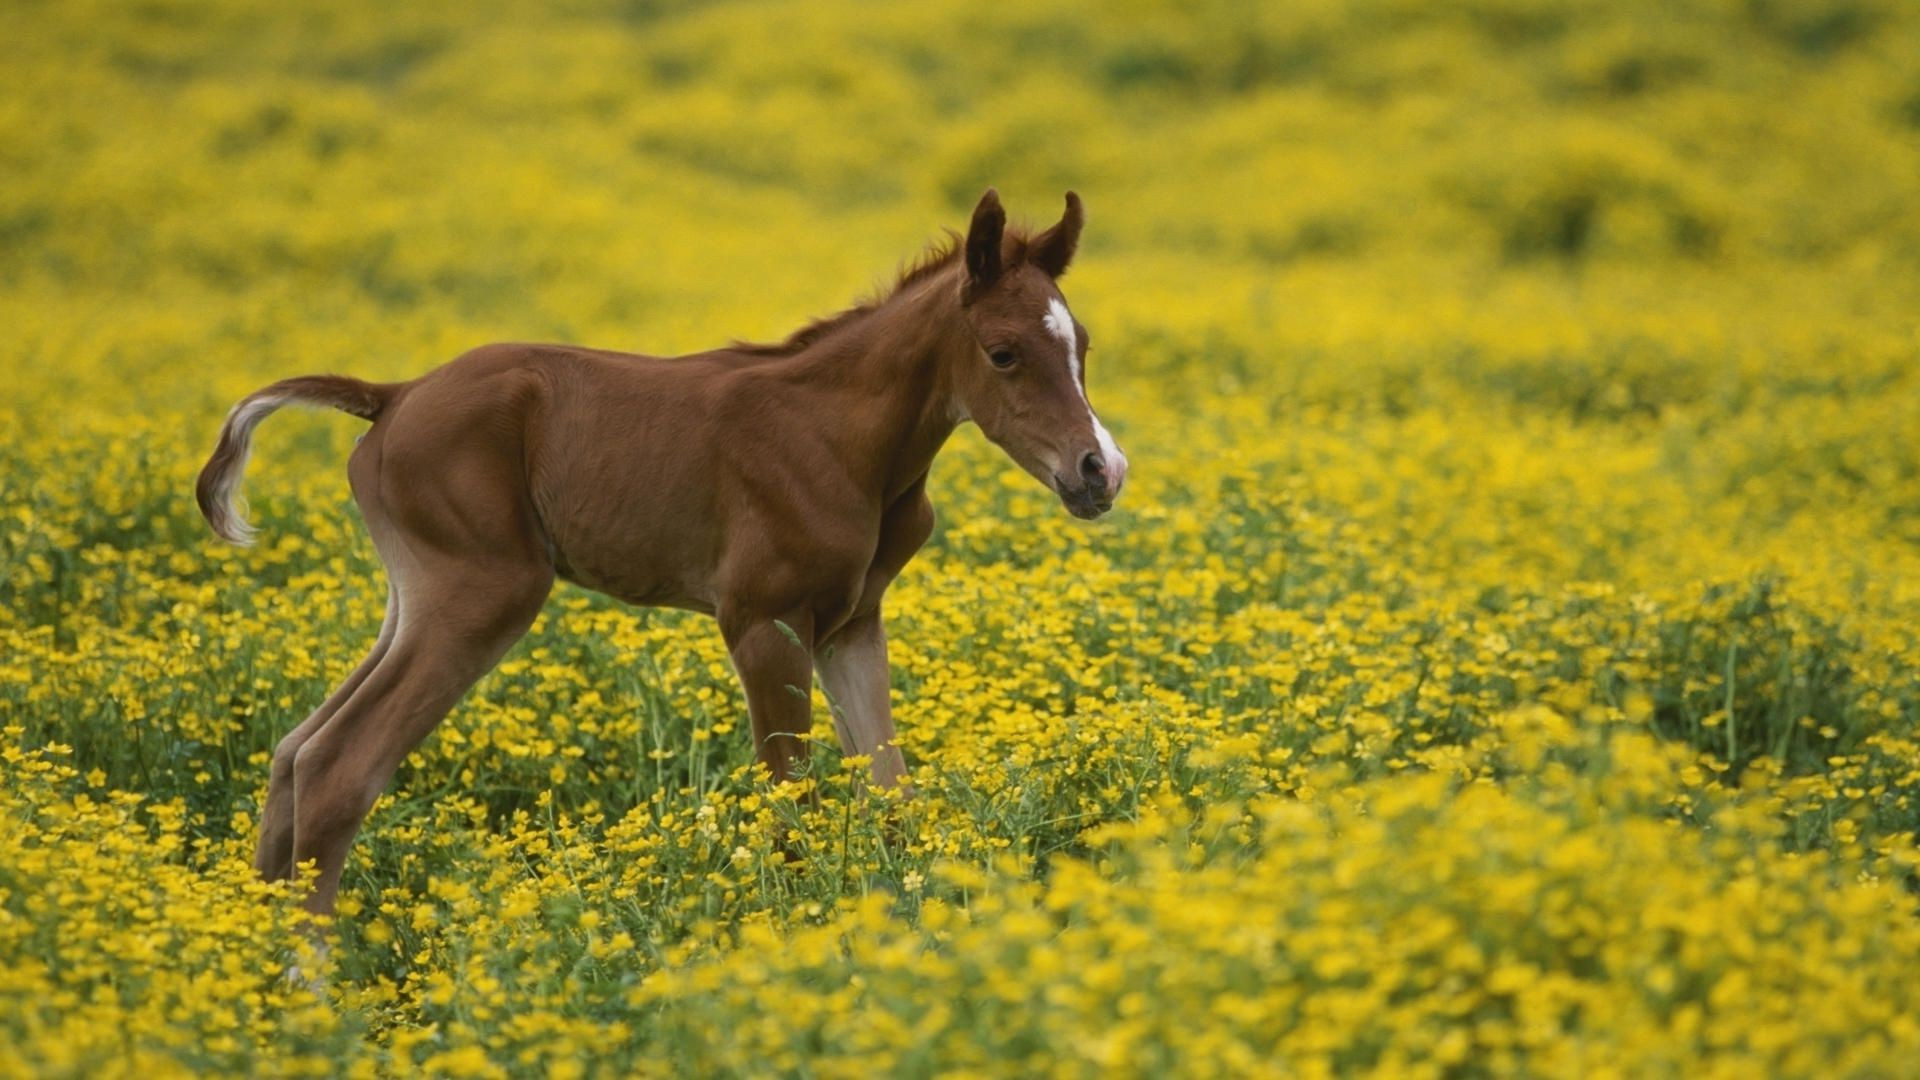 foal in field with yellow flowers